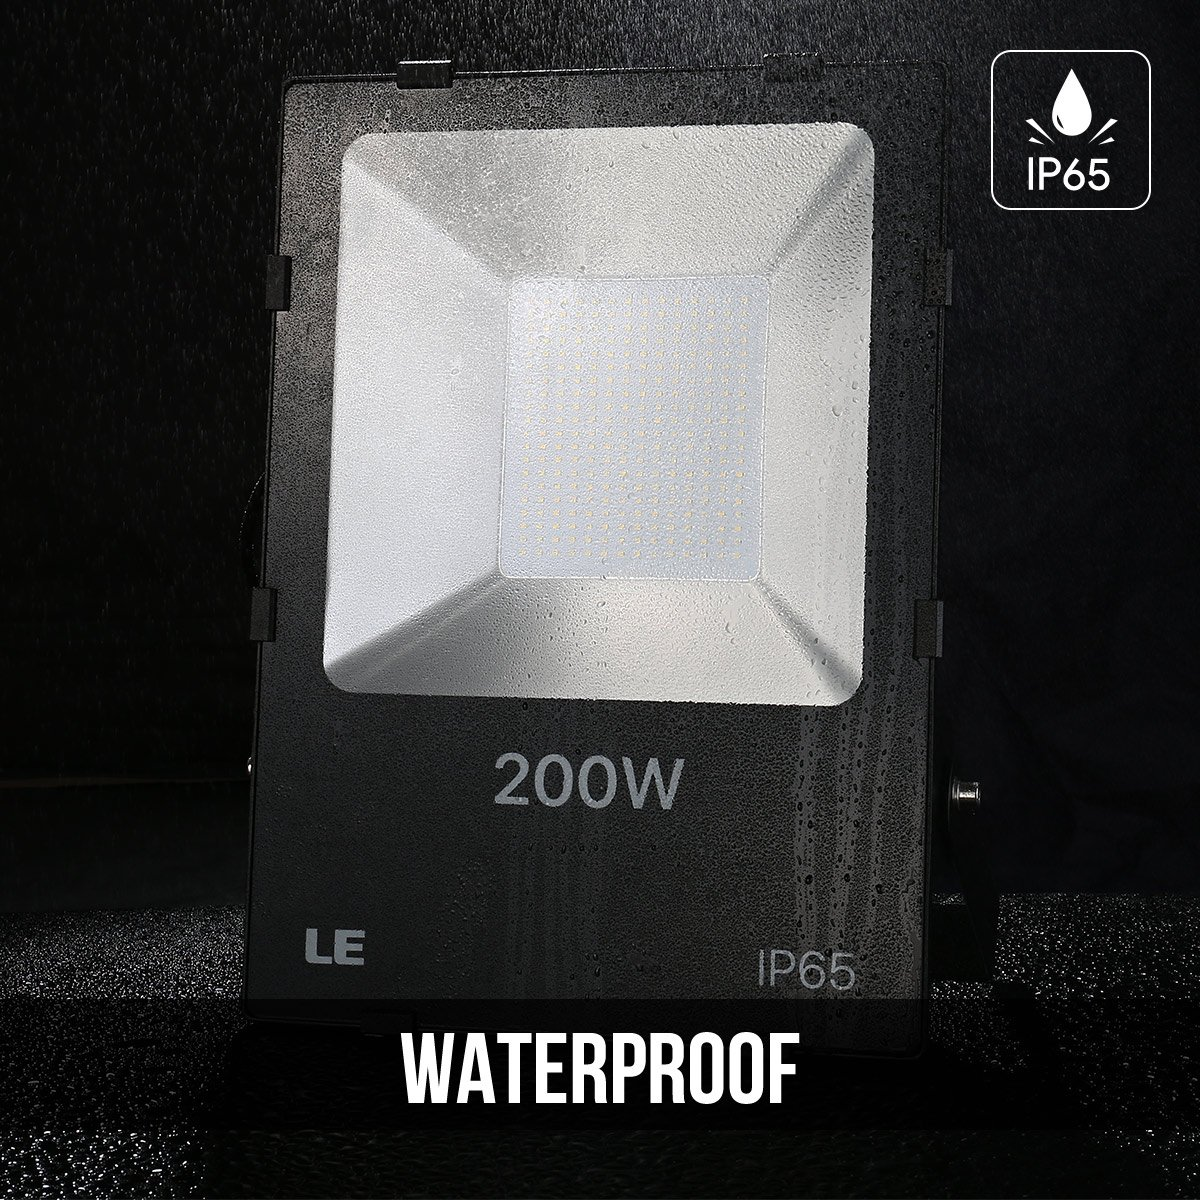 LE 200W Super Bright Outdoor LED Flood Lights, Daylight White, 5000K, 600W HPSL Equivalent Security Lights, Floodlight (ETL Listed) by Lighting EVER (Image #4)